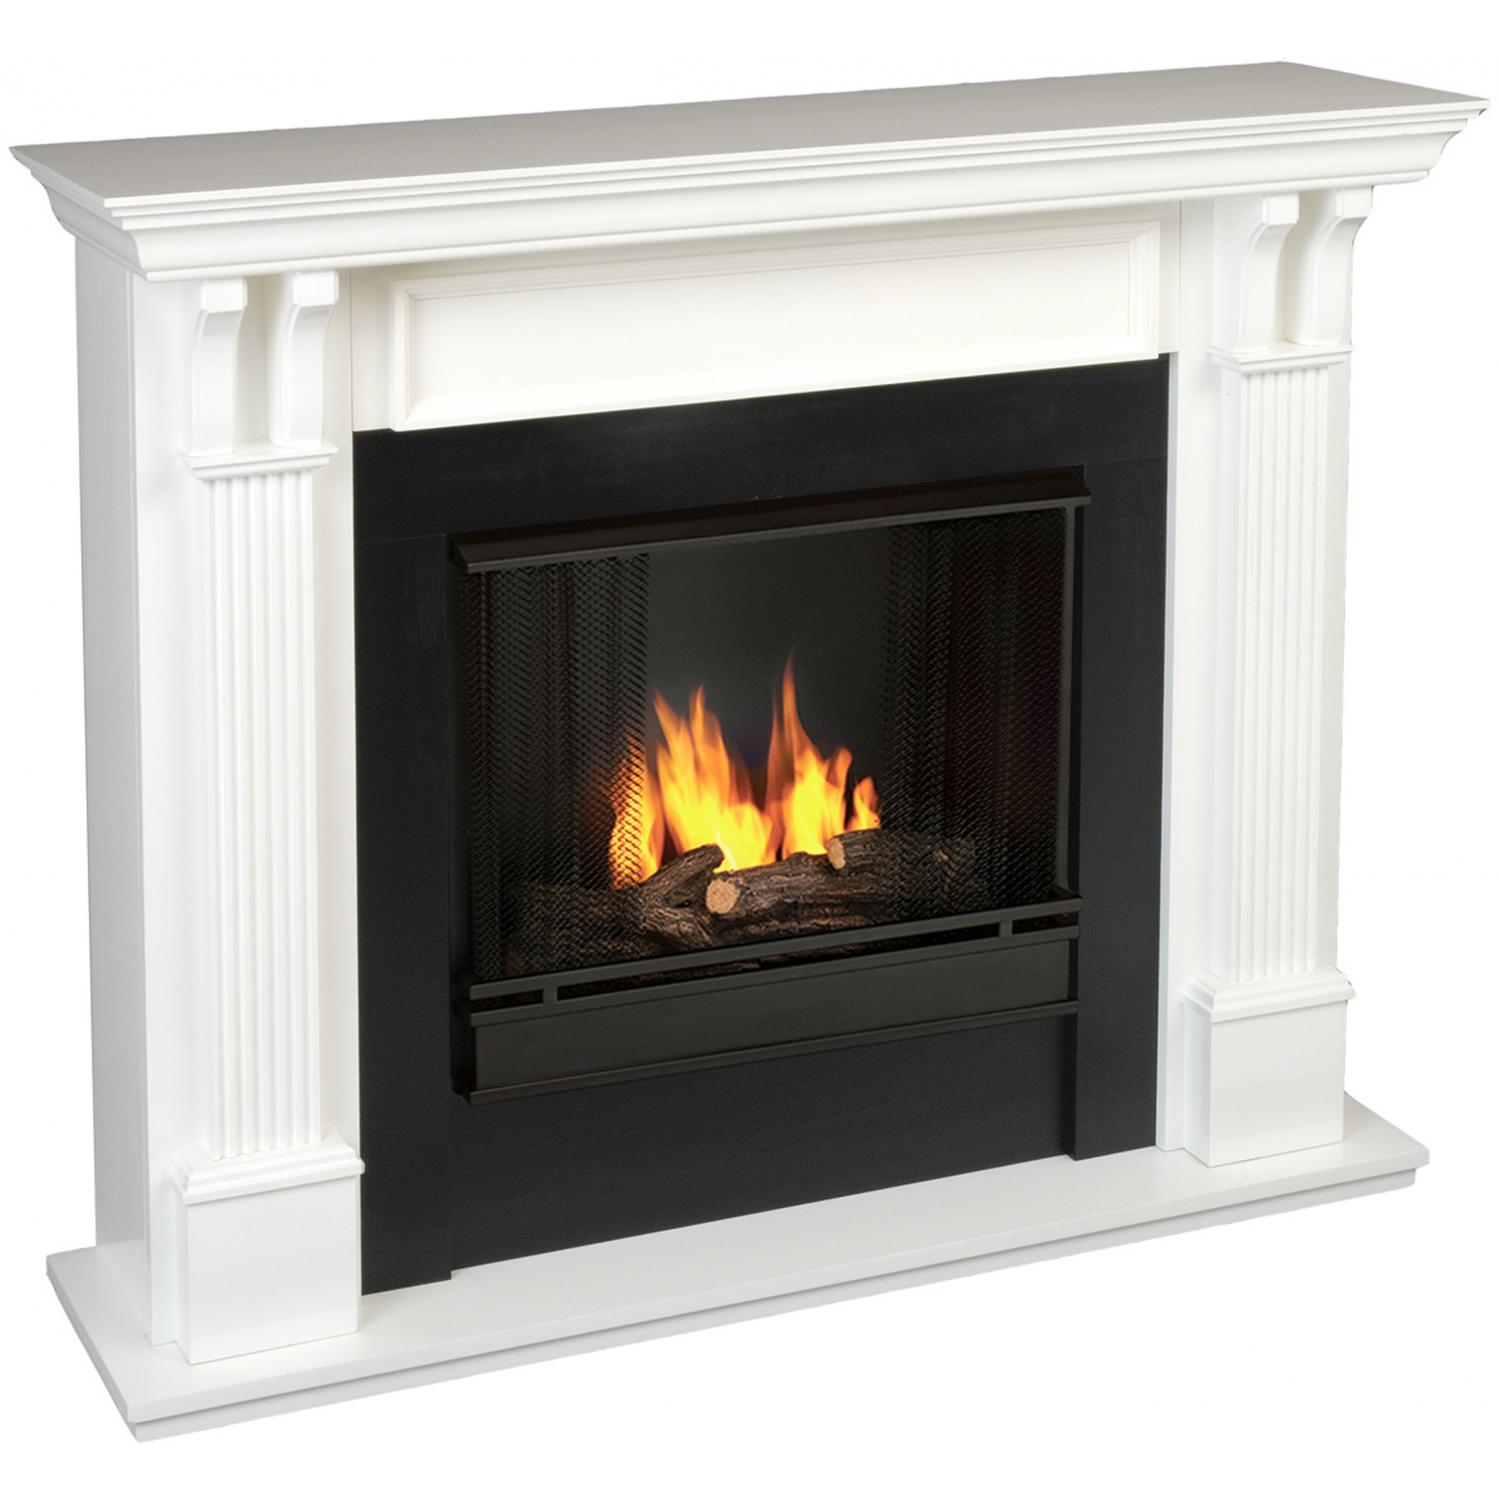 Picture of Real Flame Ashley 48-Inch Gel Fireplace - White